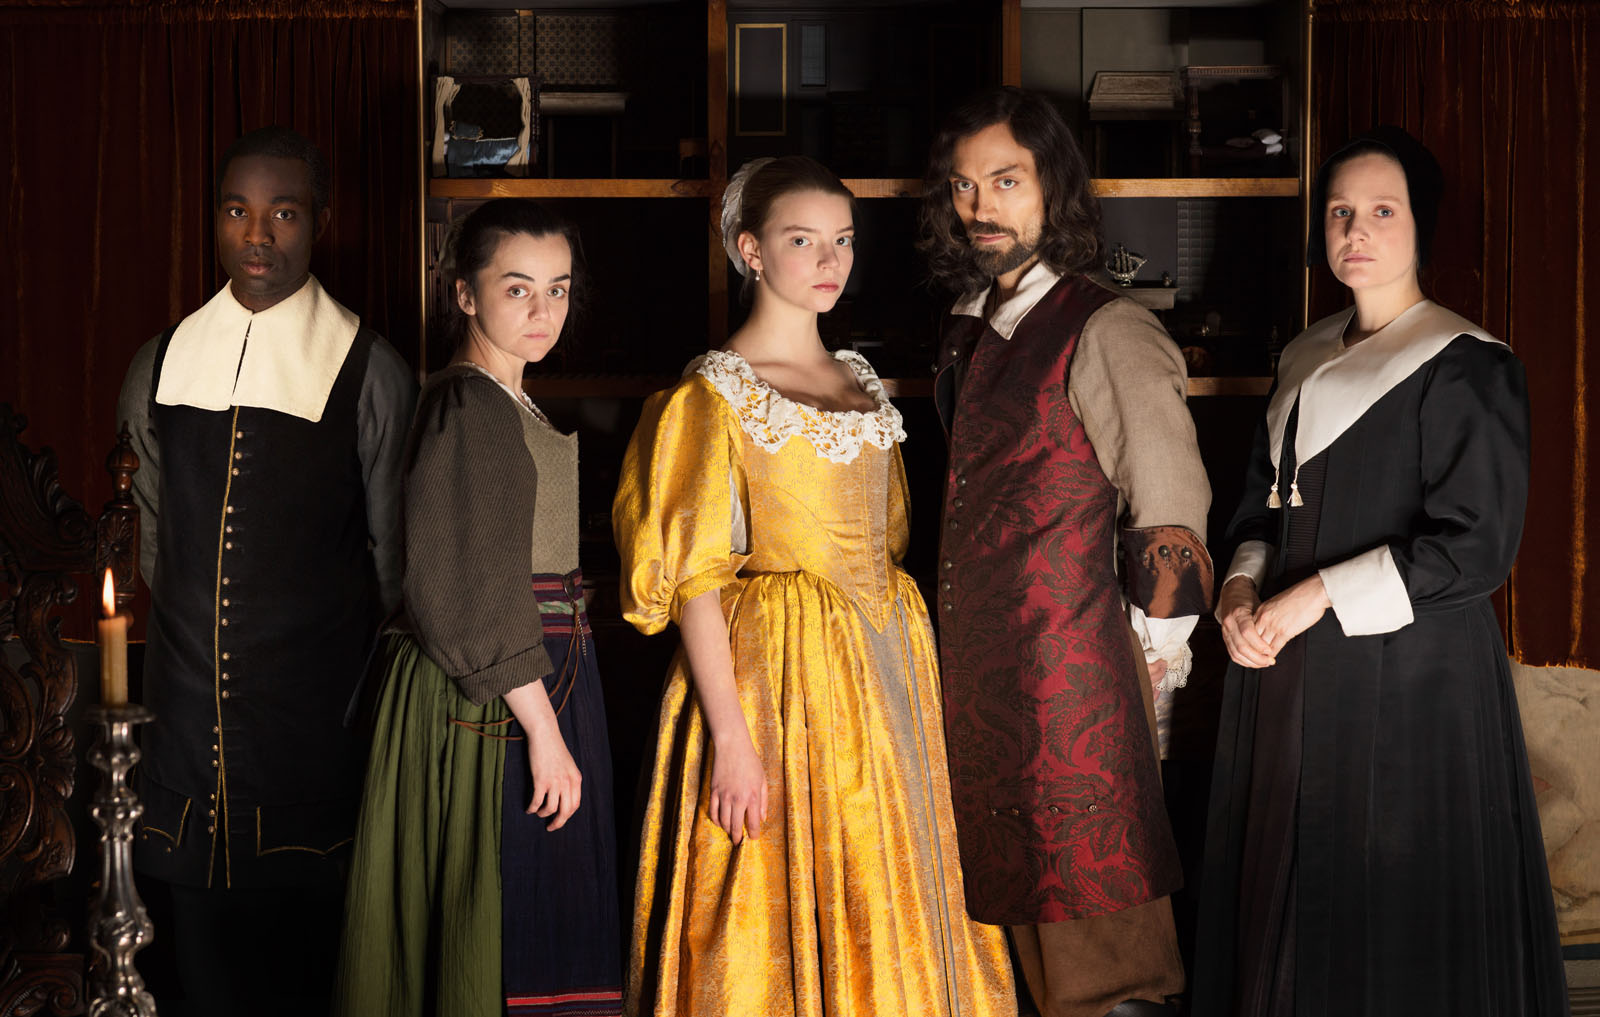 The-Miniaturist-full-cast-photo-bbc-the-forge-copyright